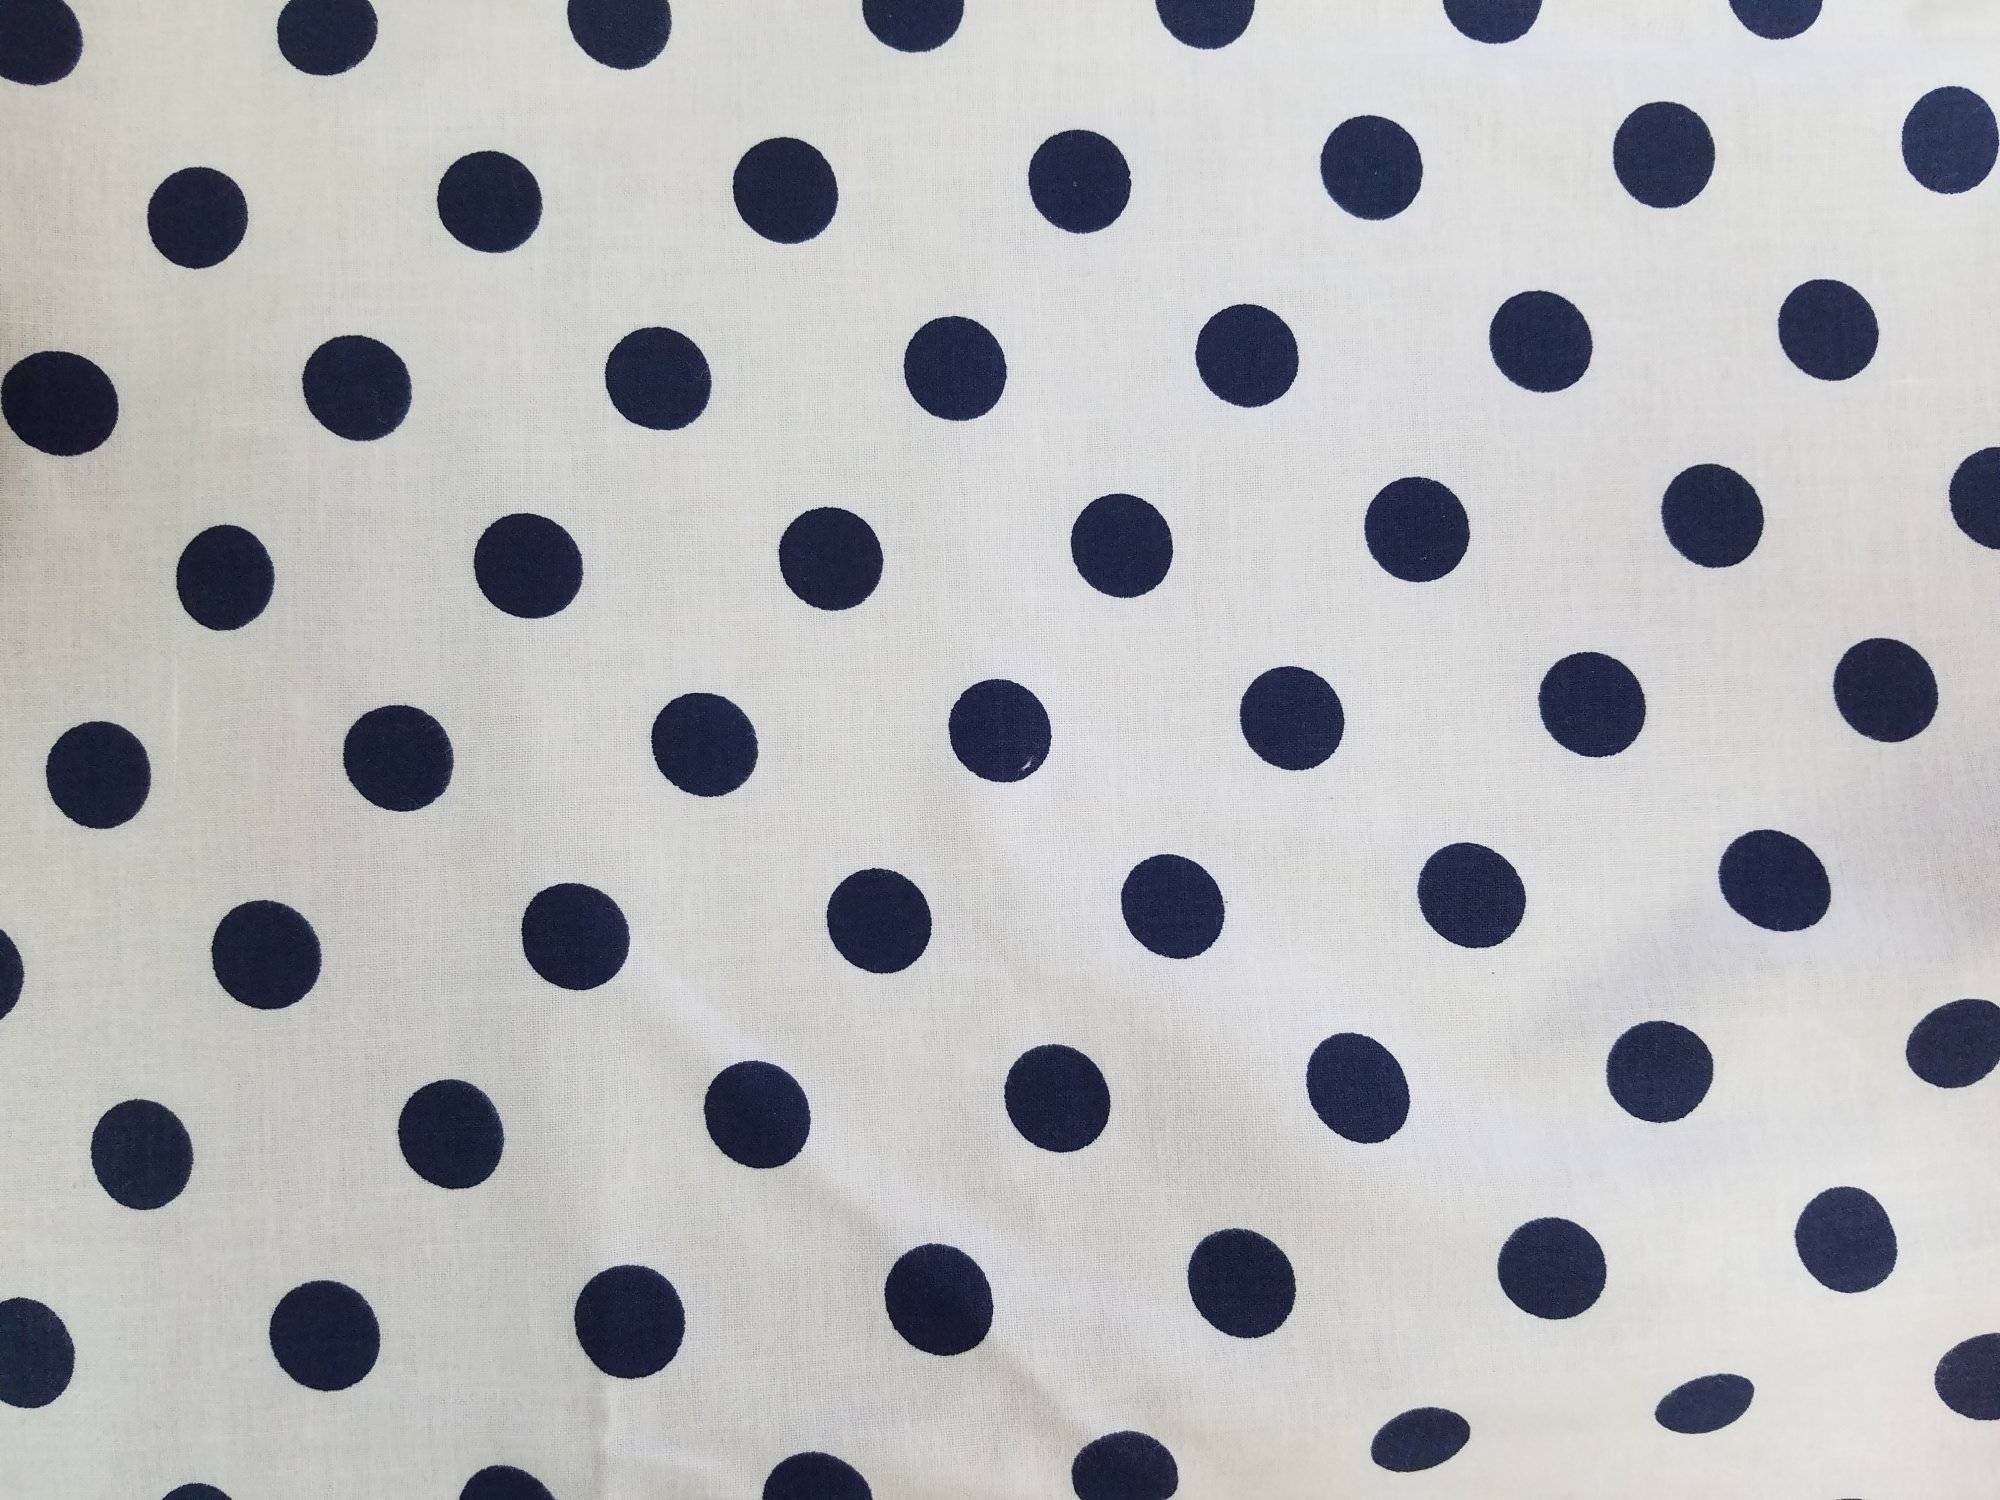 Lots-A-Dots - White with Navy Dots - 47579-03